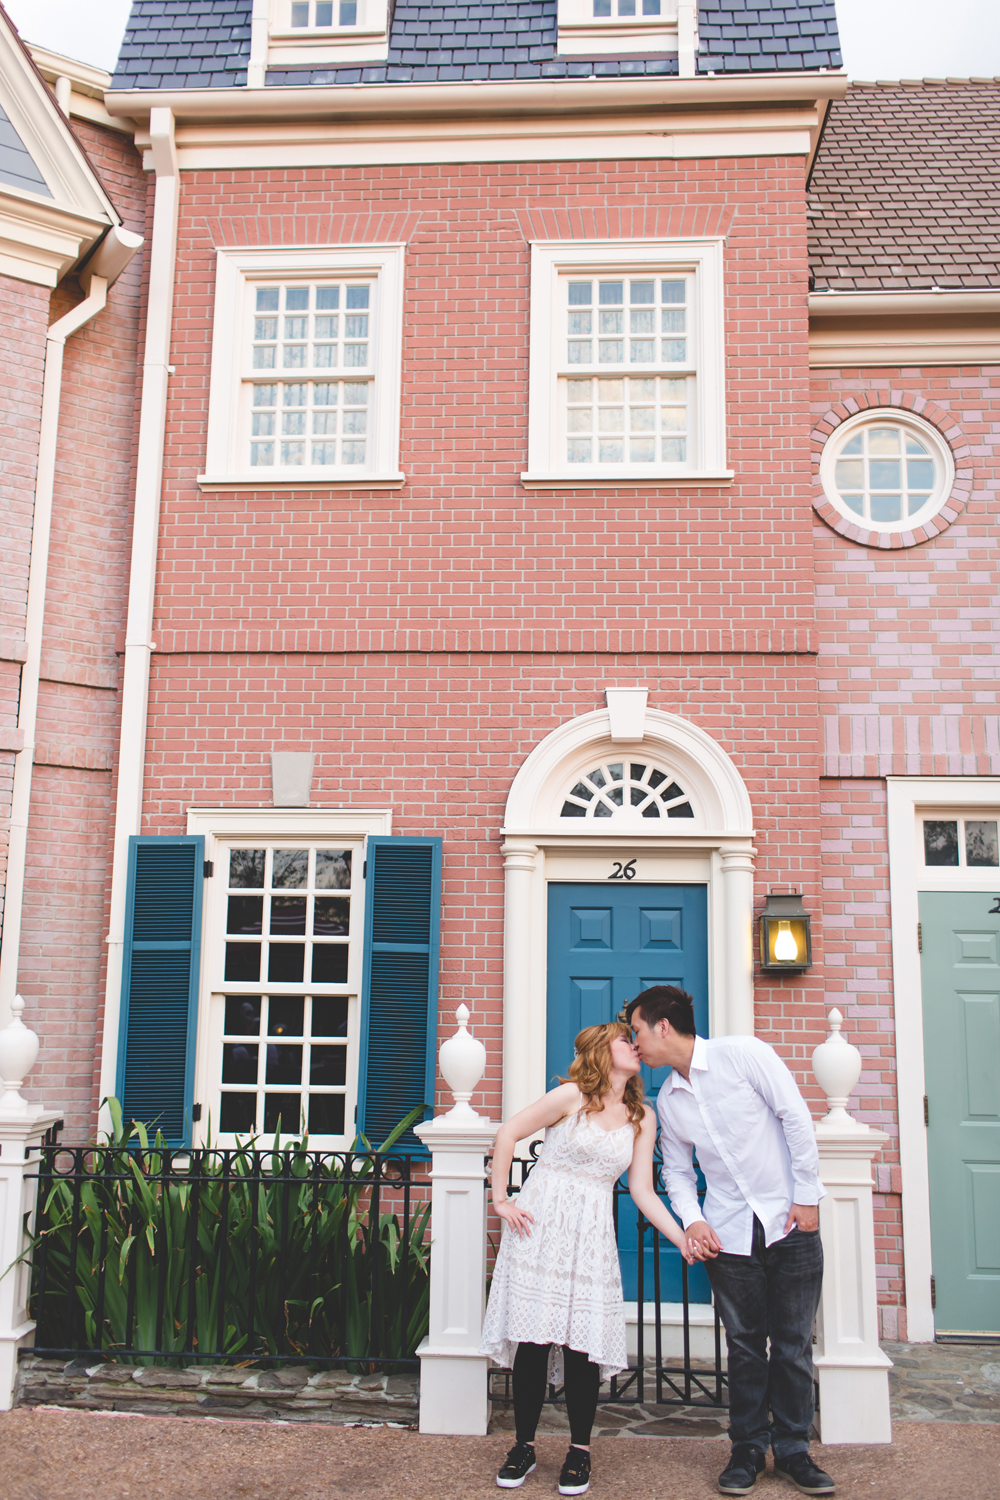 Disney Honeymoon session - Disney Engagement Photos - Disney Wedding Photographer - Destination Orlando Wedding Photographer - Jaime DiOrio (63).jpg